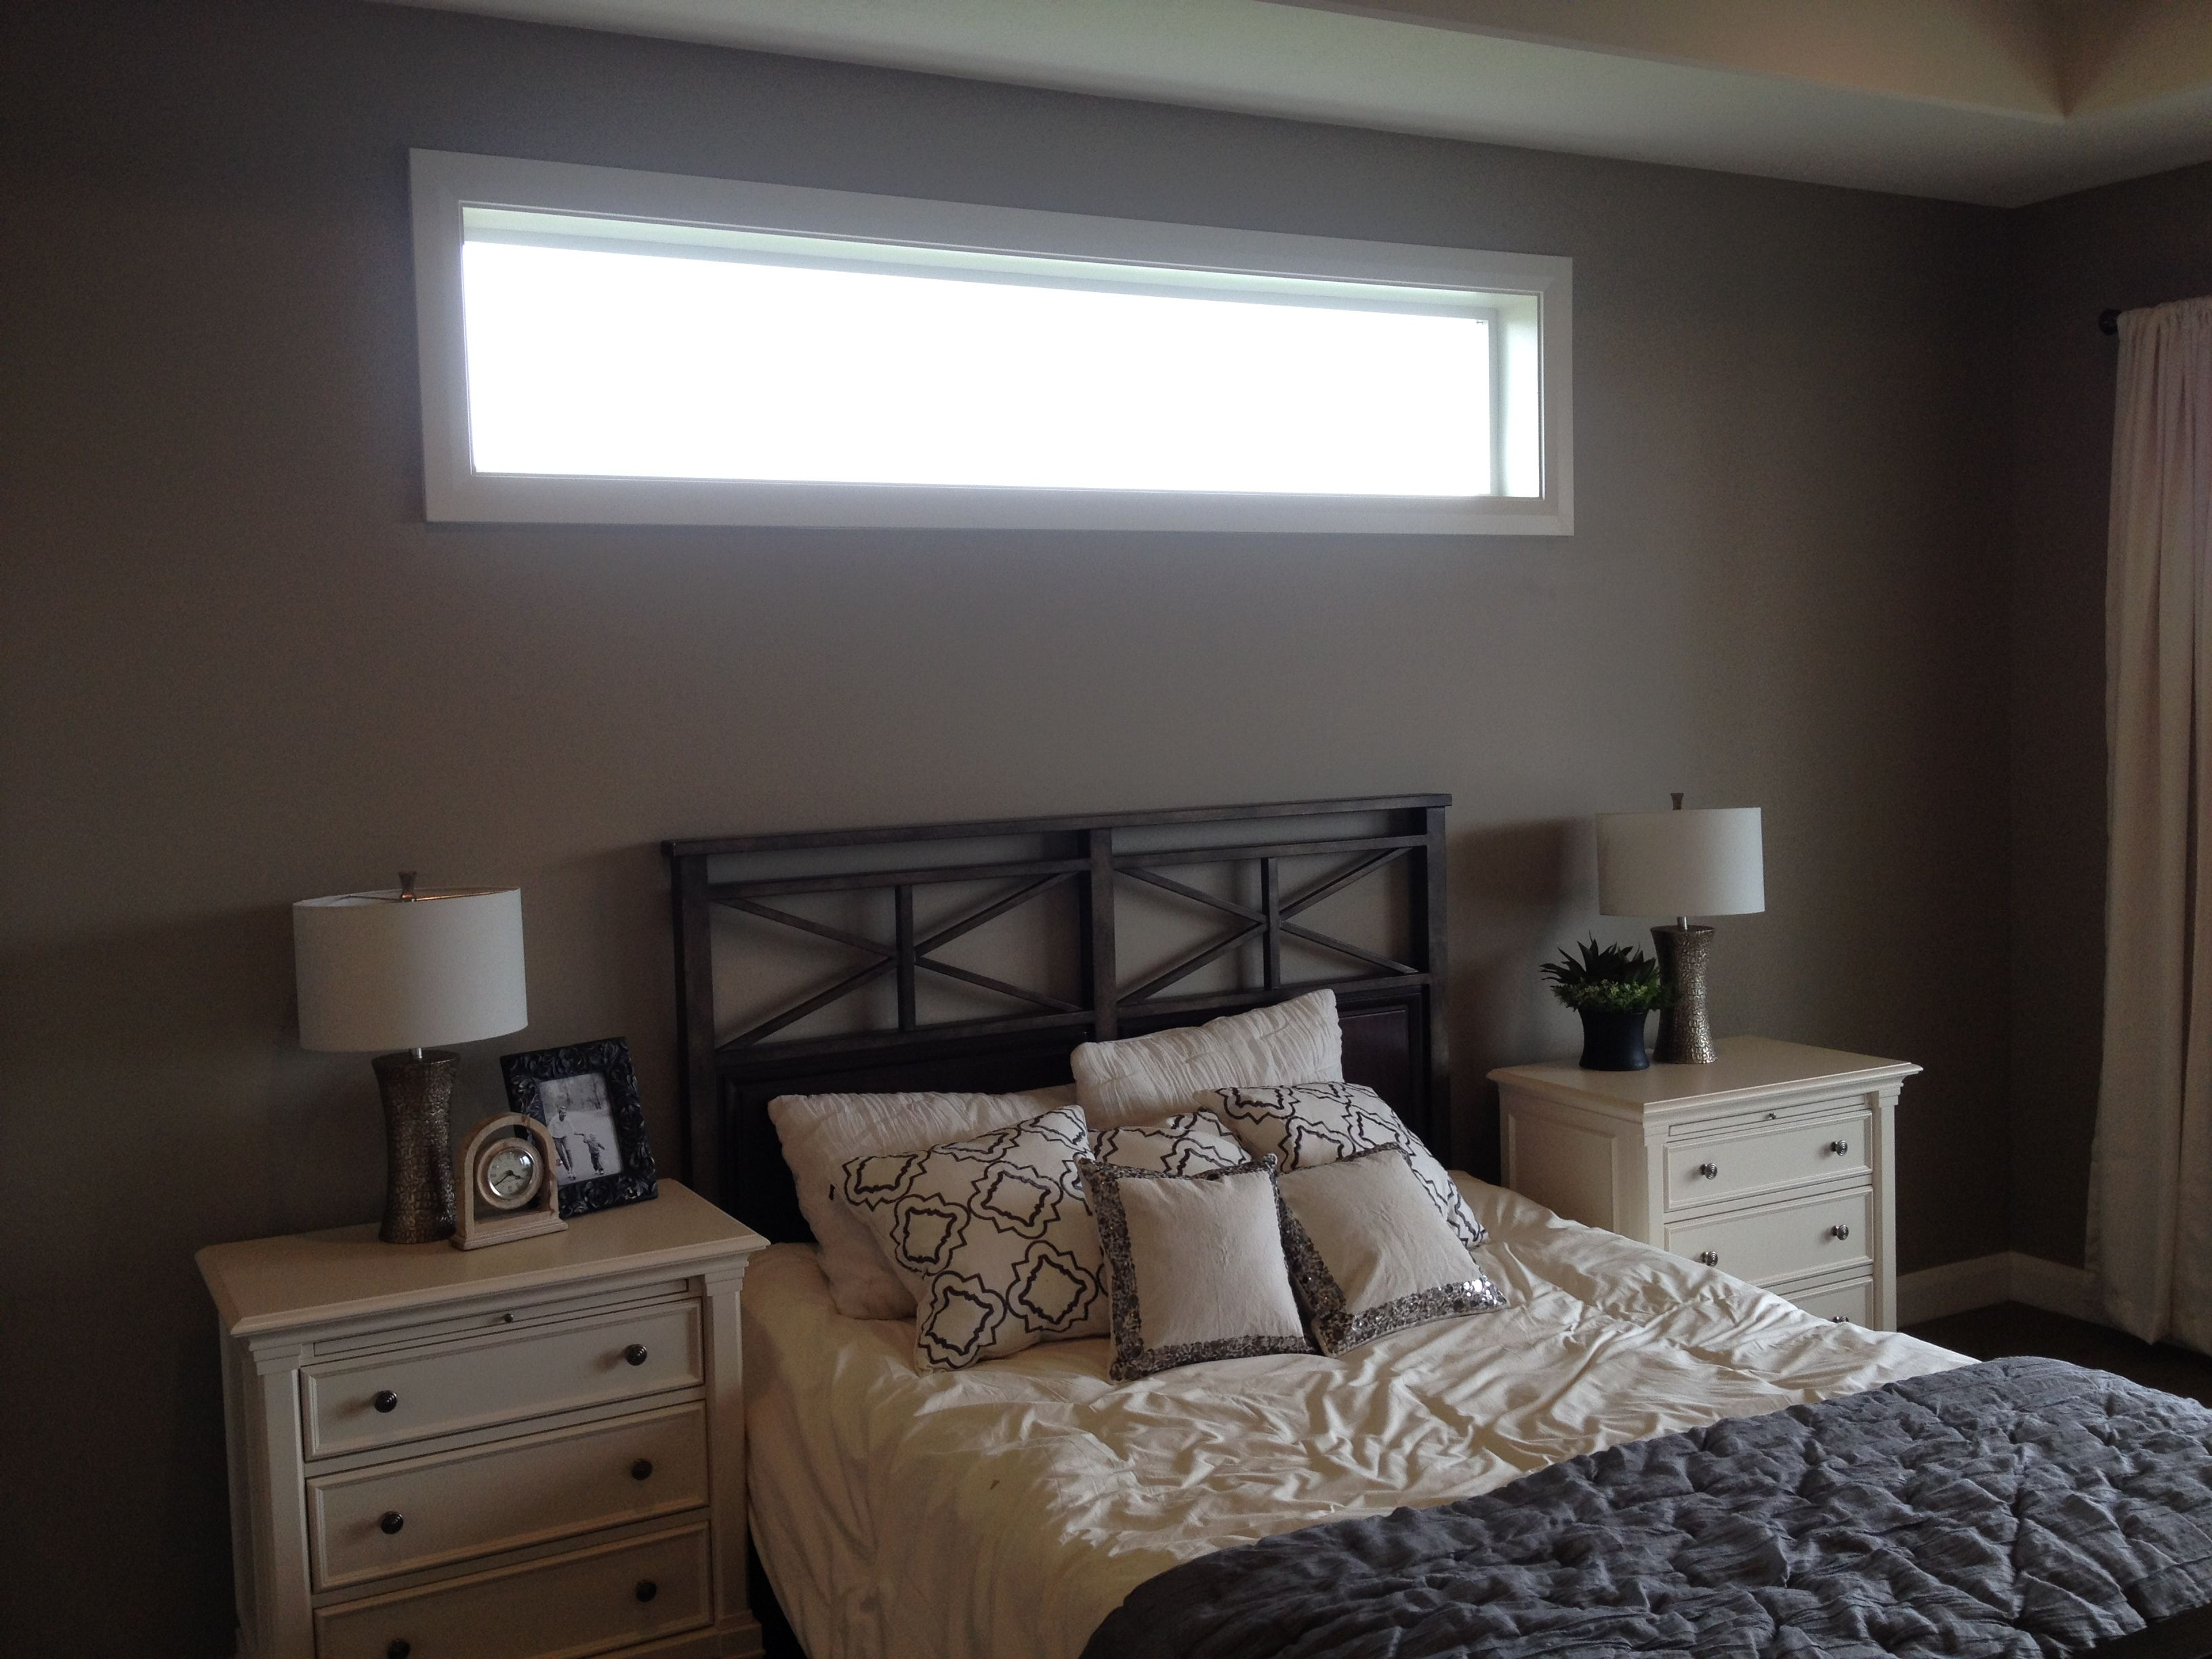 Bed under window ideas  love the long thin window above the bed  bedroom windows